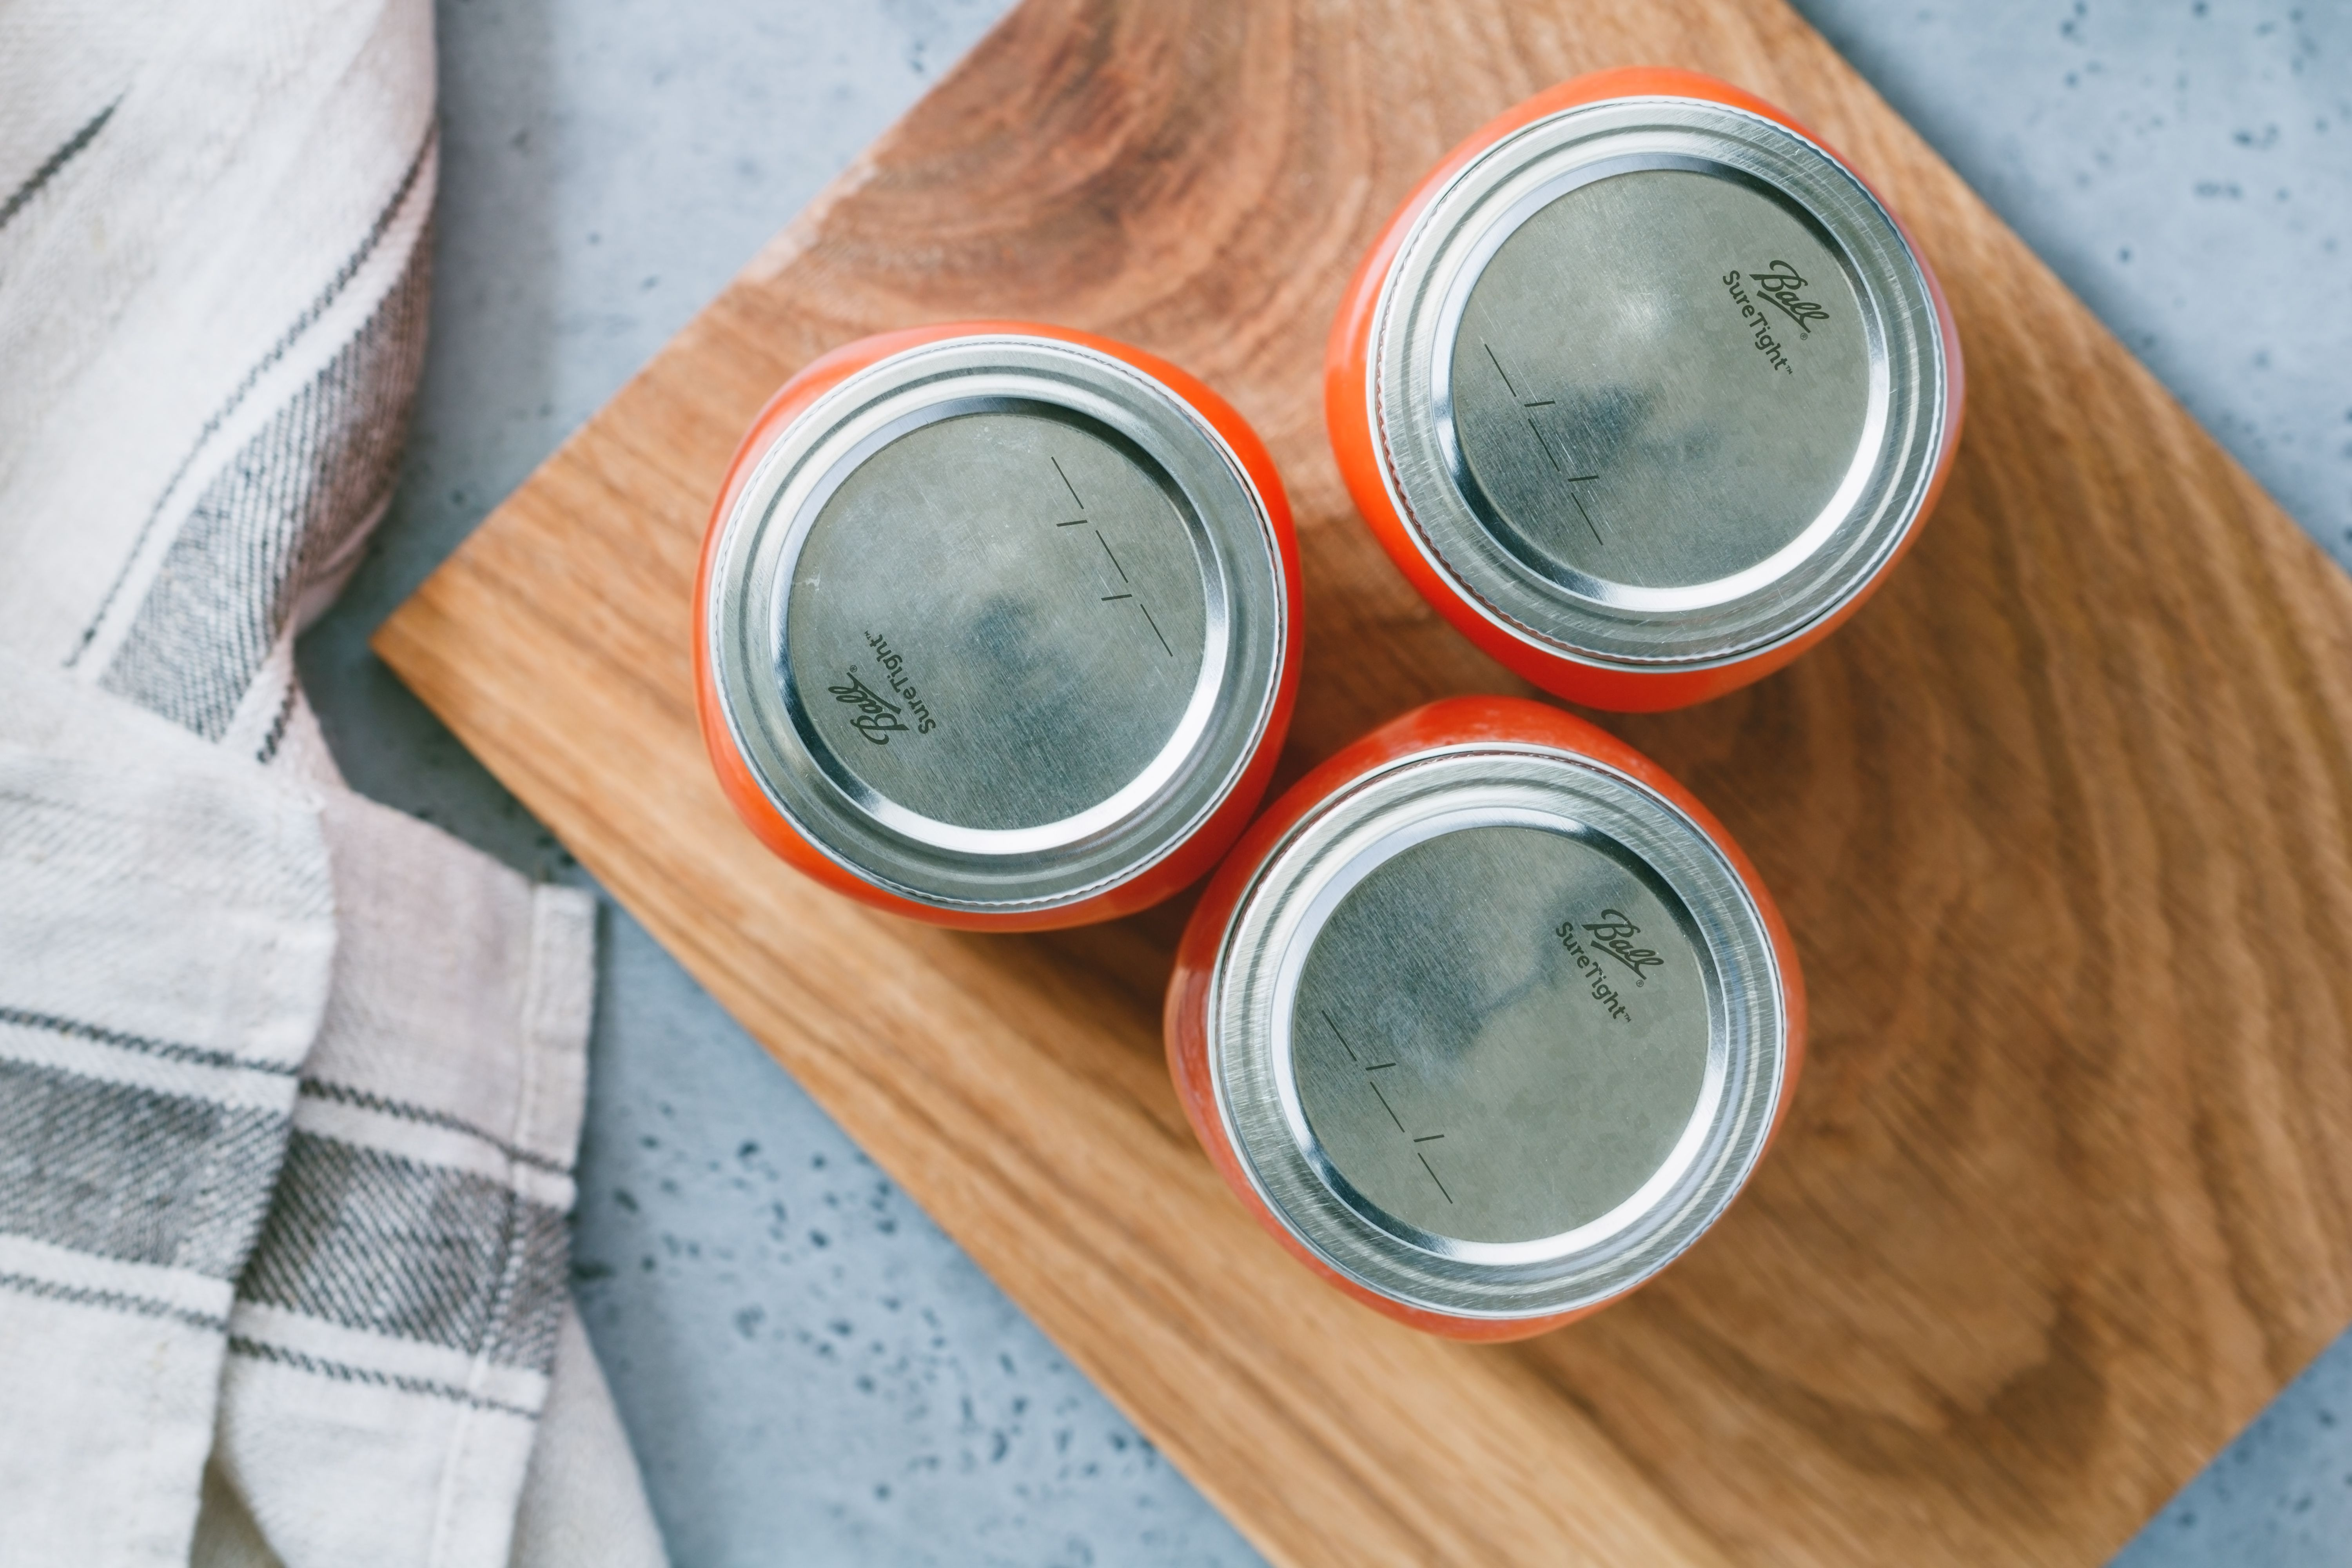 Tomato puree in jars topped with lids